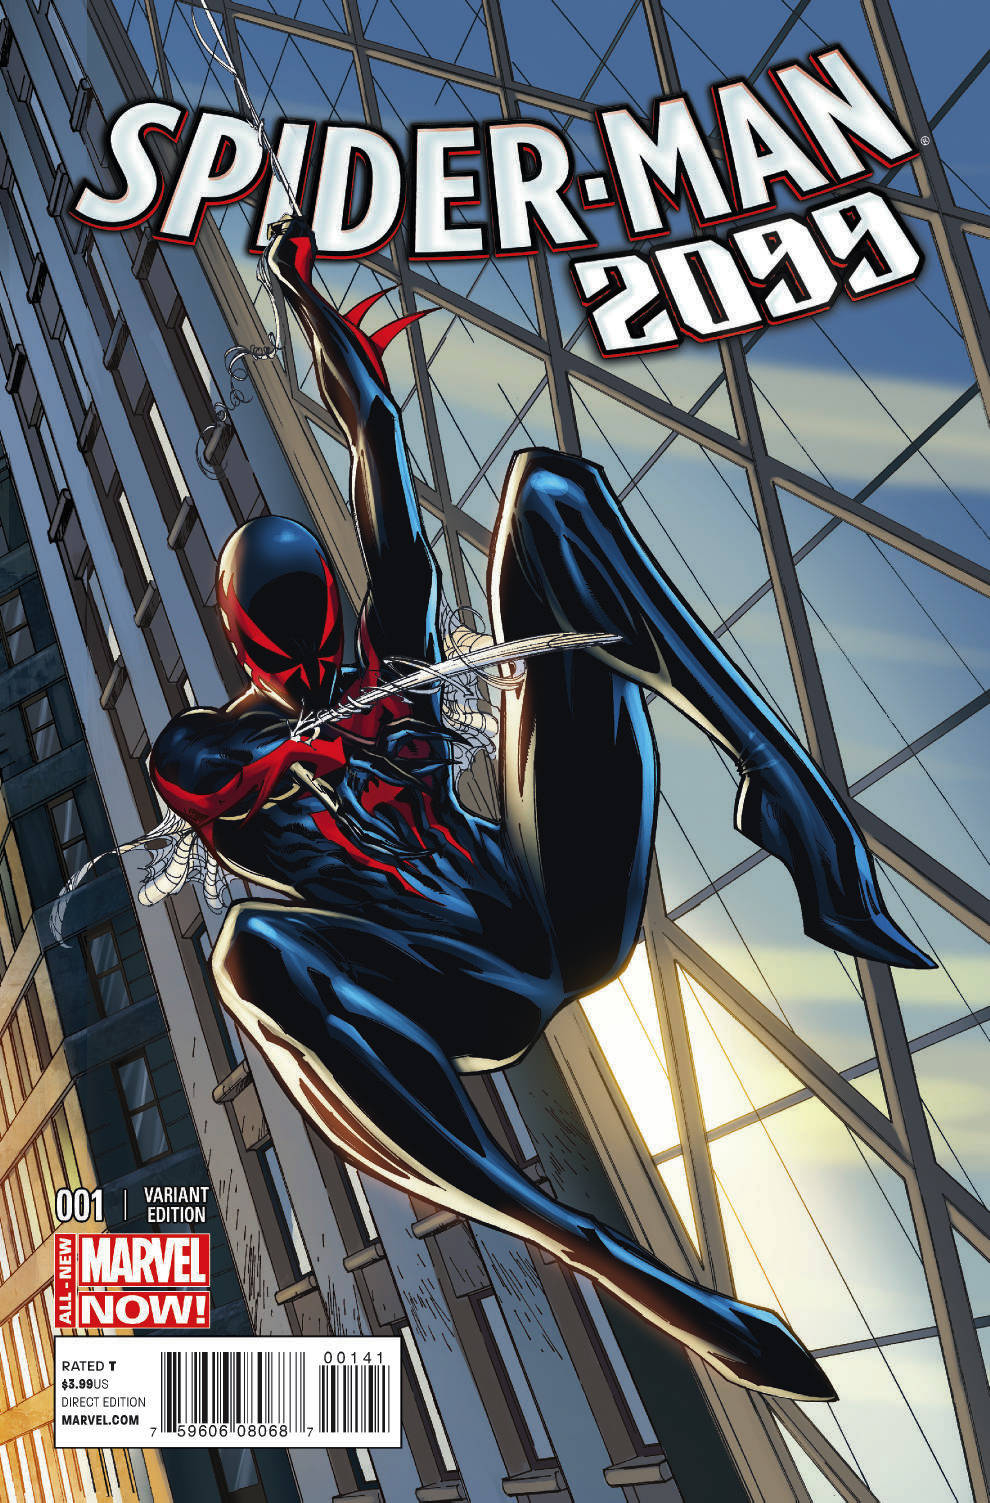 SPIDER-MAN 2099 #1 CAMPBELL CONNECTING C VAR ANMN